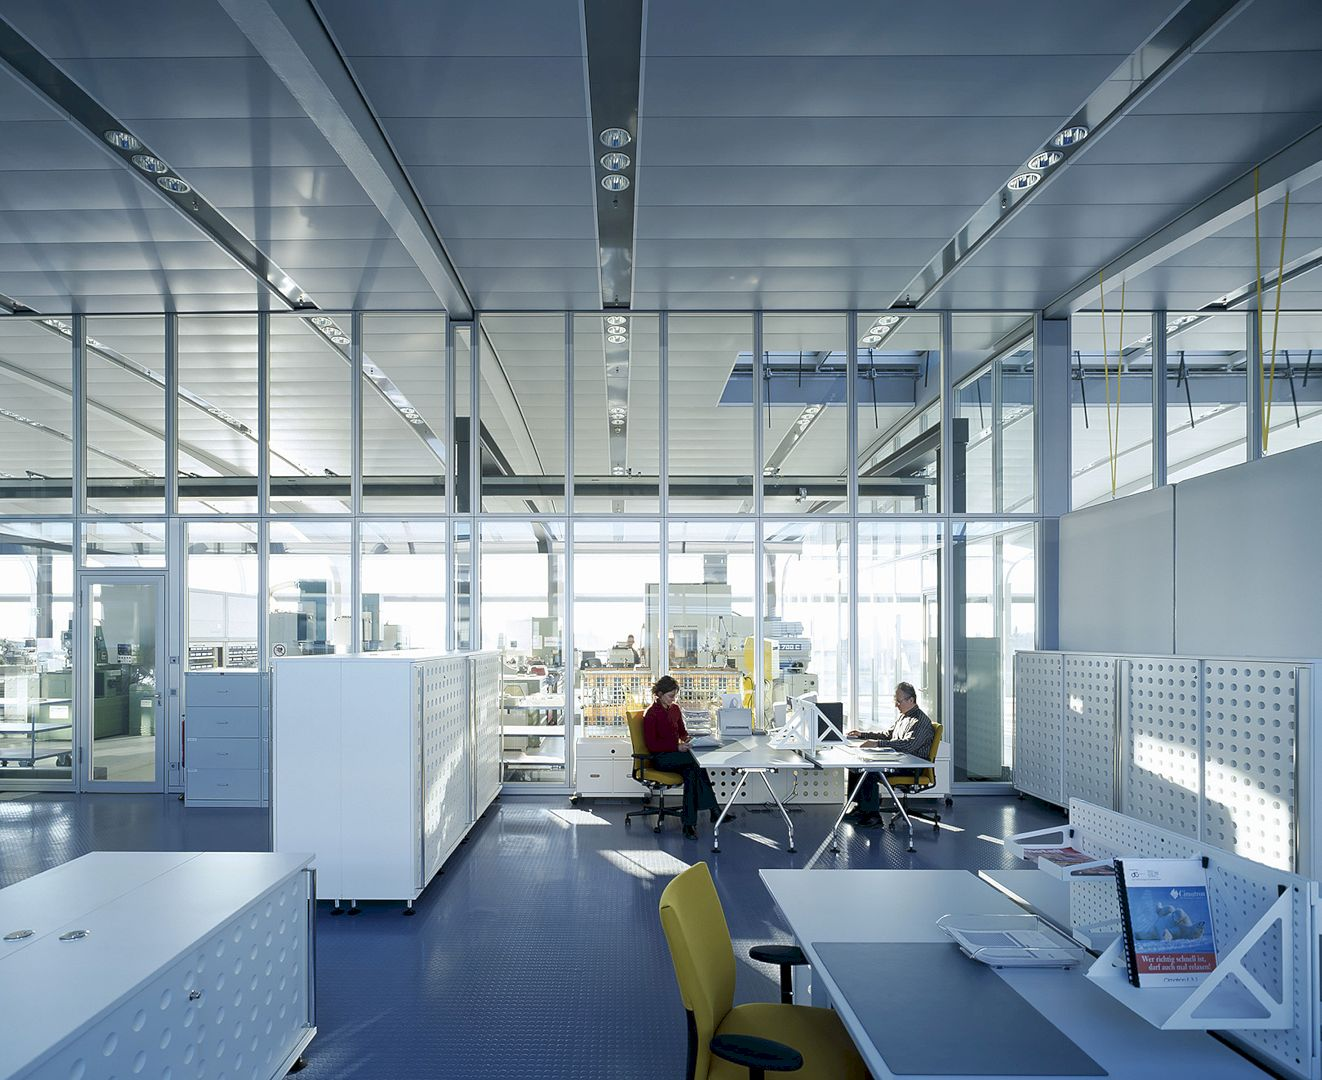 Gira Production Building By Ingenhoven Architects 8